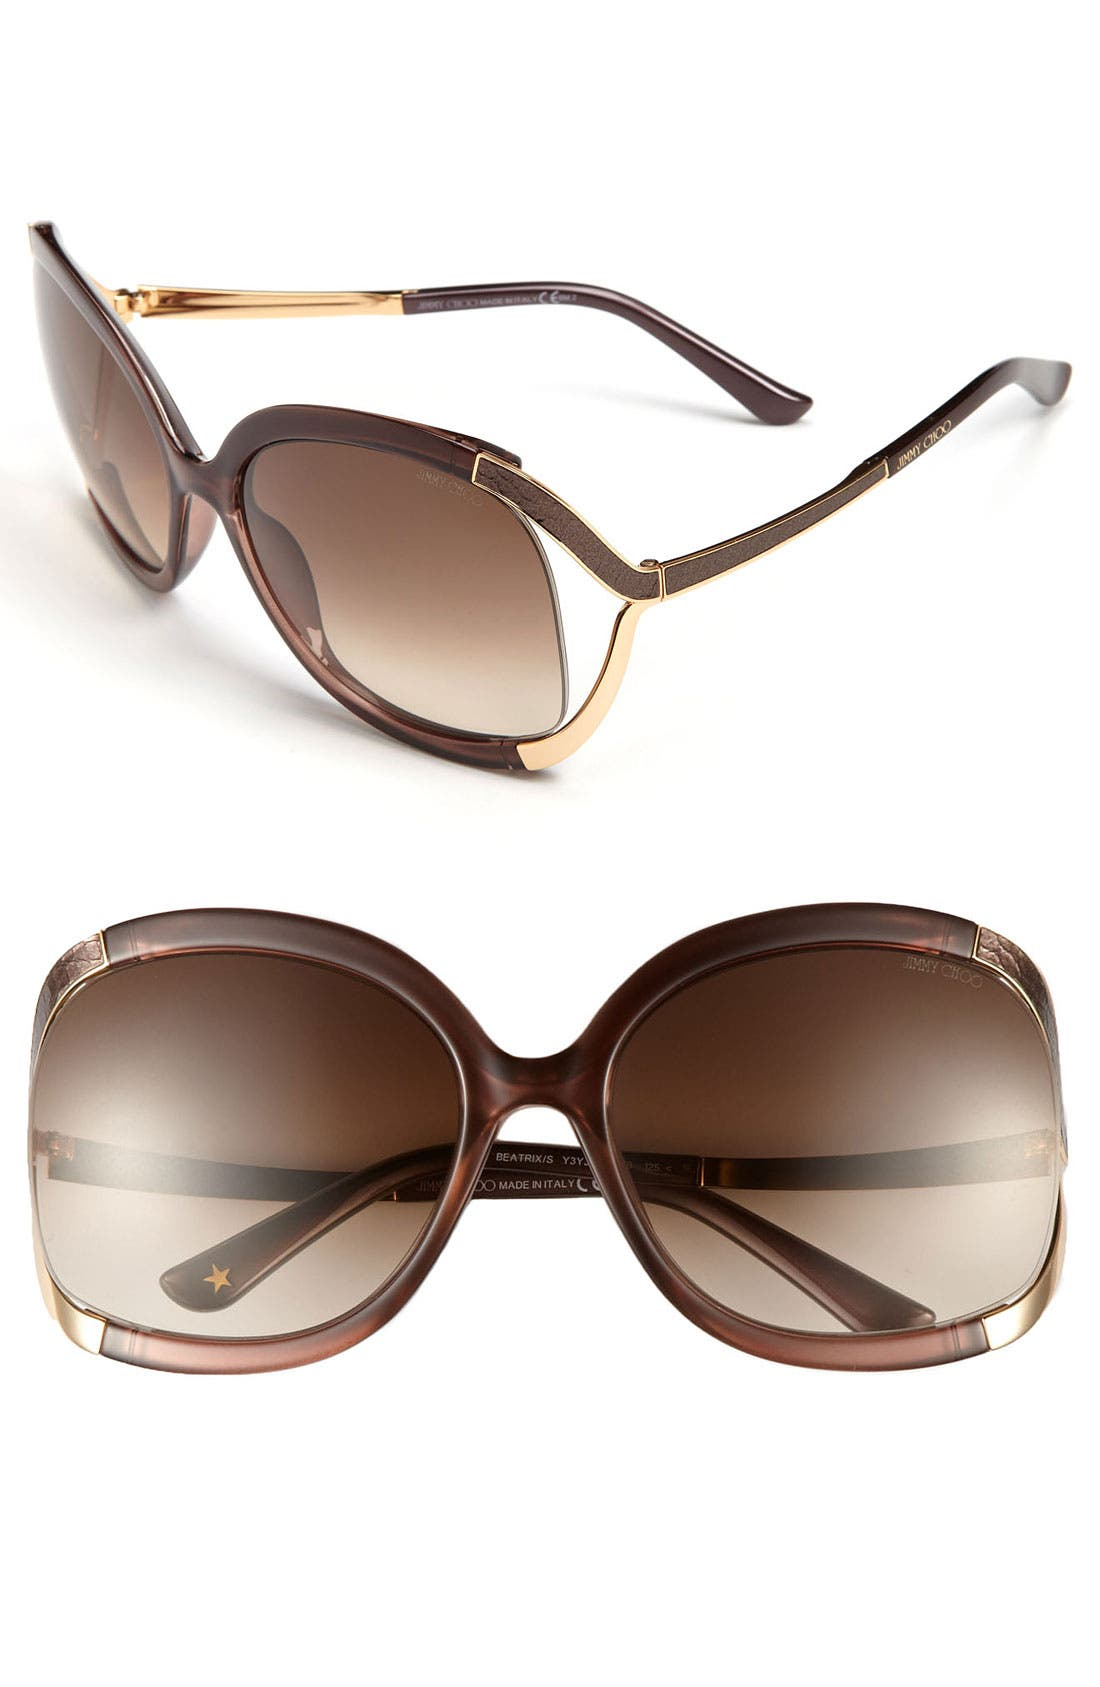 Alternate Image 1 Selected - Jimmy Choo 'Beatrix' 61mm Sunglasses